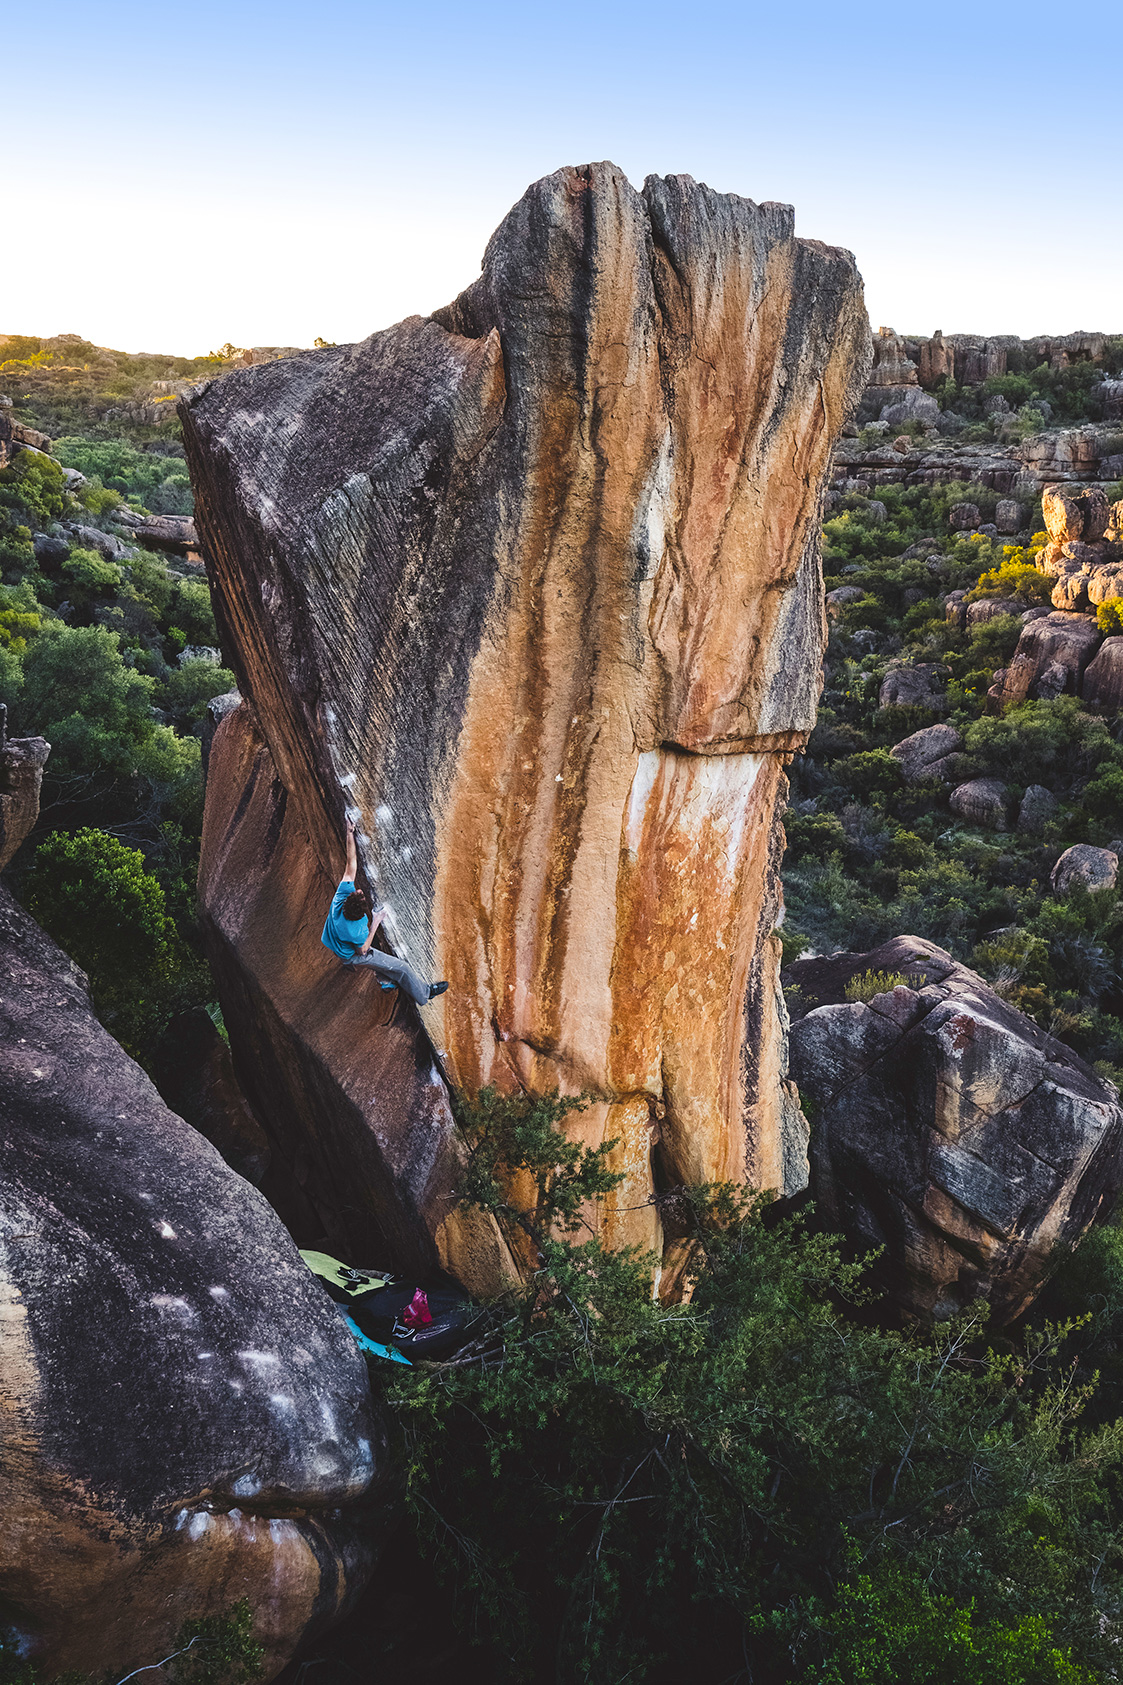 Giuliano Cameroni on the Finnish Line (V15/16), Rocklands, South Africa.